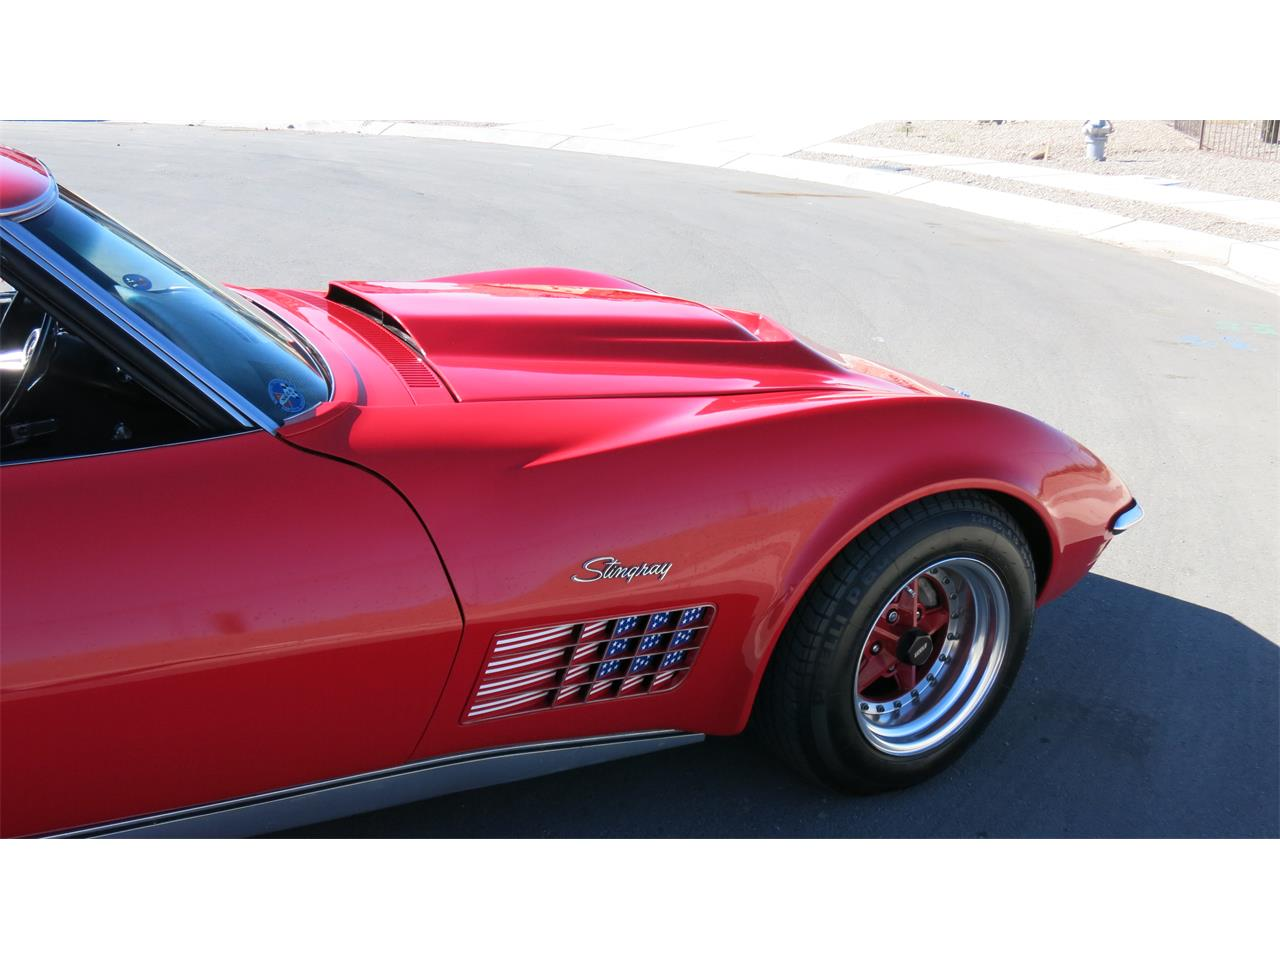 Large Picture of Classic '72 Chevrolet Corvette located in Arizona - $25,000.00 Offered by a Private Seller - OCSF